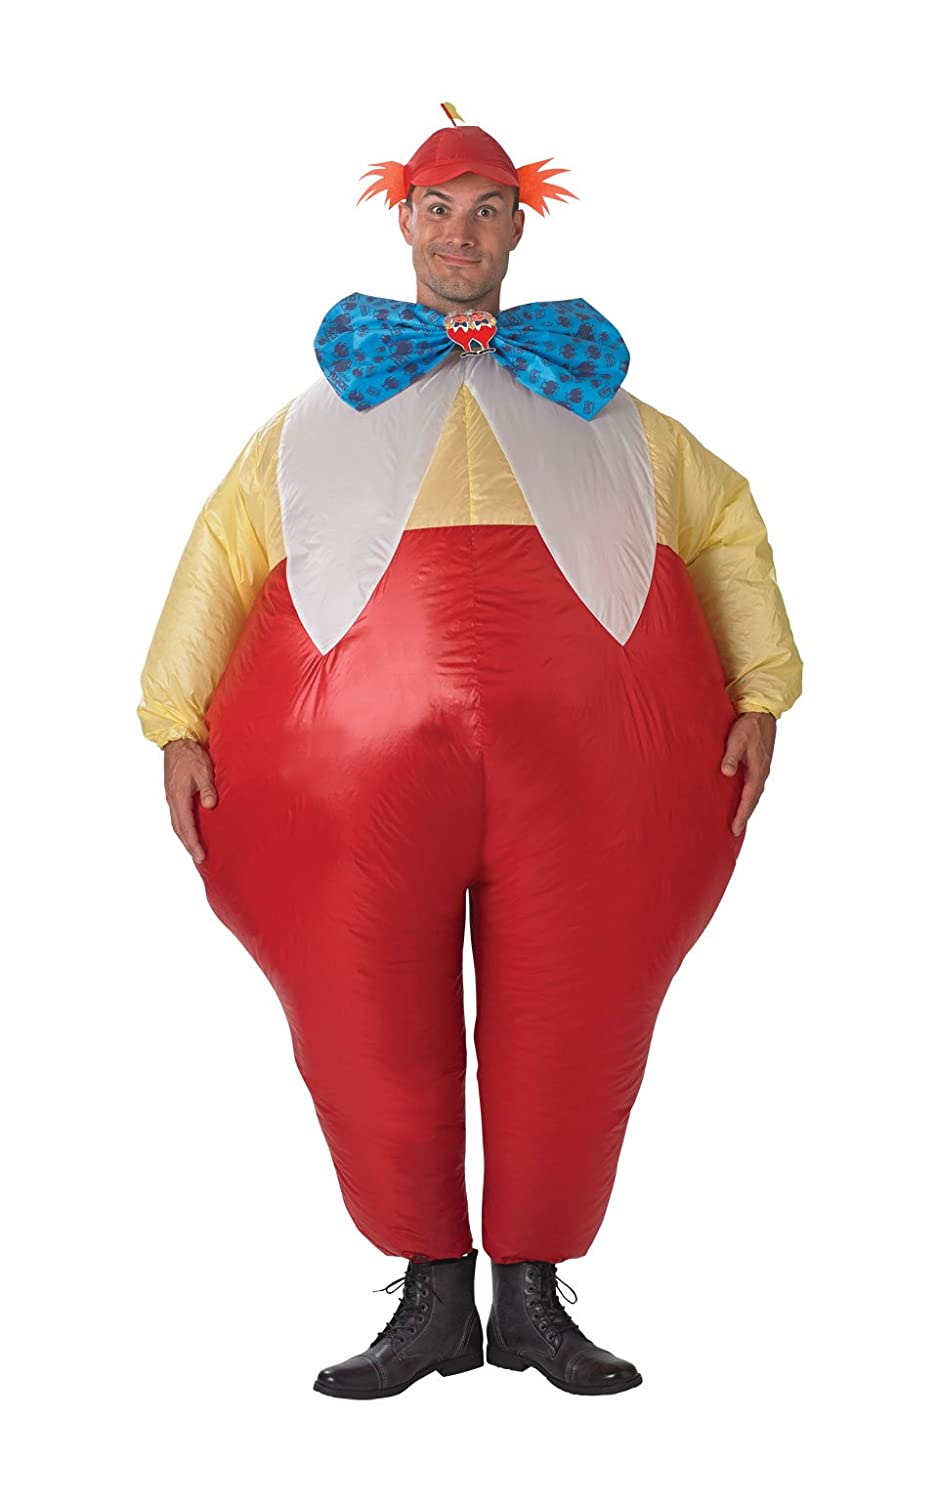 Amazon.com Rubies Disney - Tweedle Dee Or Tweedle Dum (Inflatable) - Adult Costume Adult - One Size Toys u0026 Games  sc 1 st  Amazon.com & Amazon.com: Rubies Disney - Tweedle Dee Or Tweedle Dum (Inflatable ...